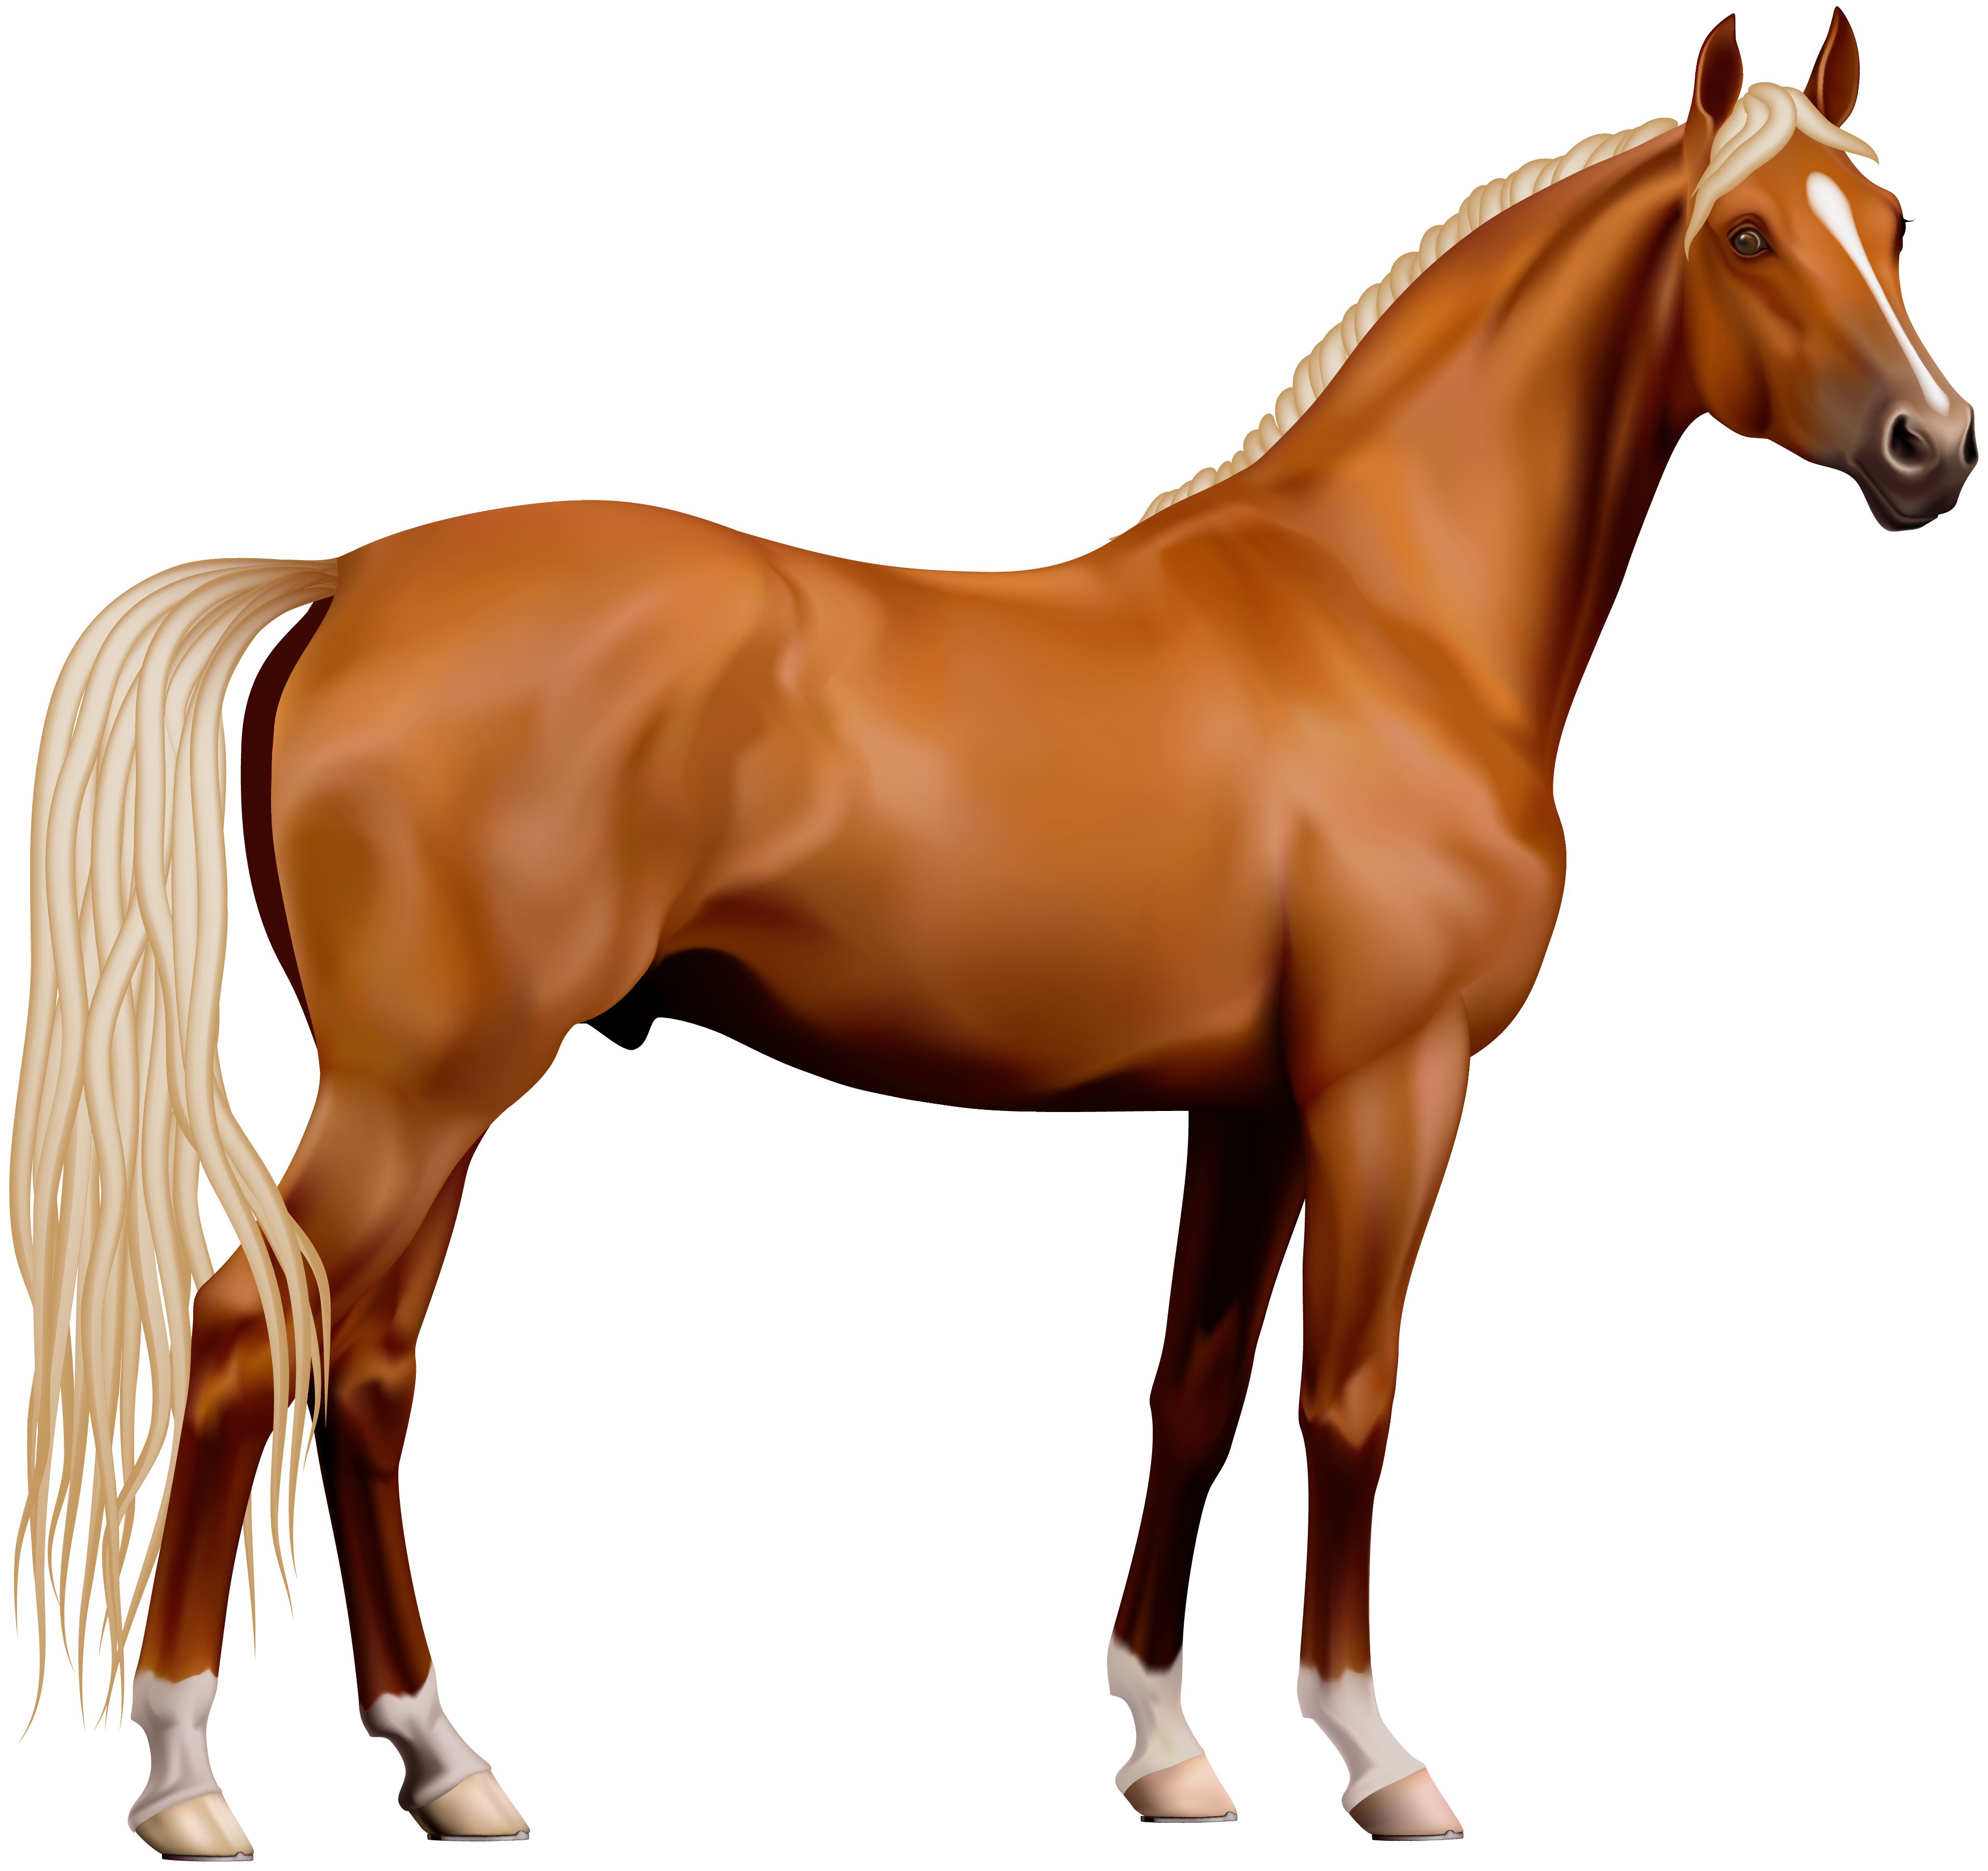 Transparent horse png.